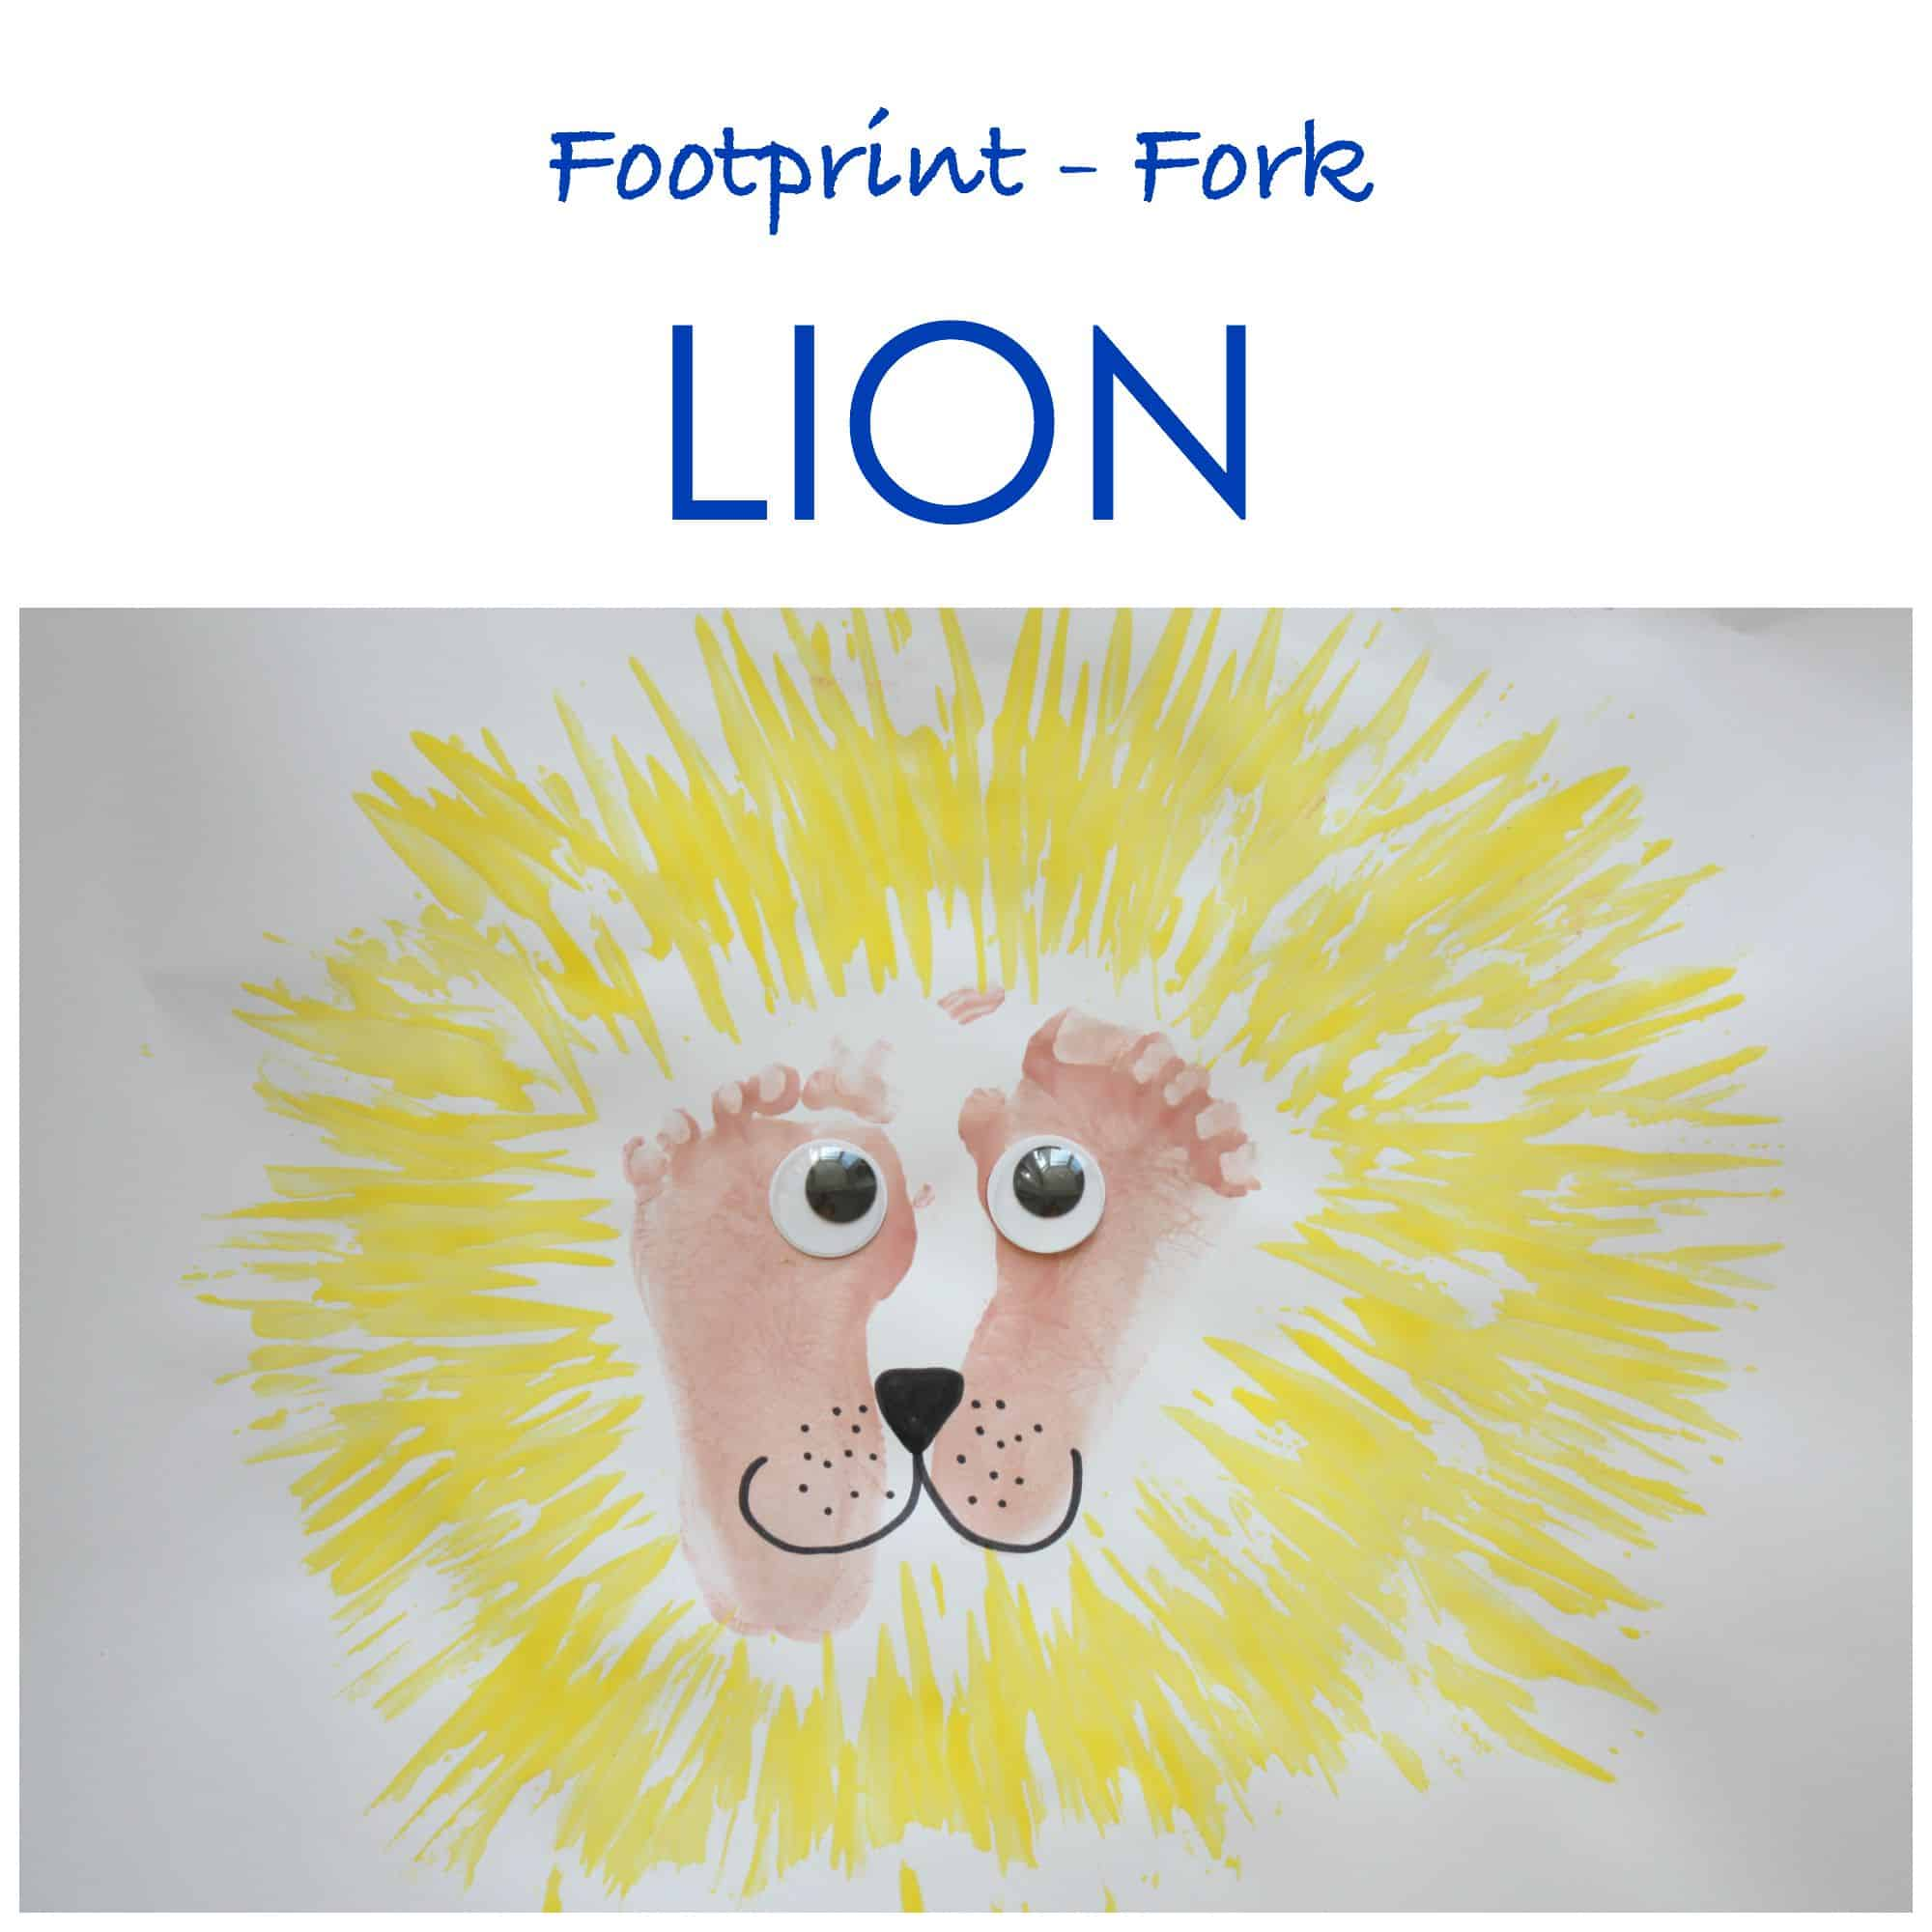 Footprint and fork lion painting